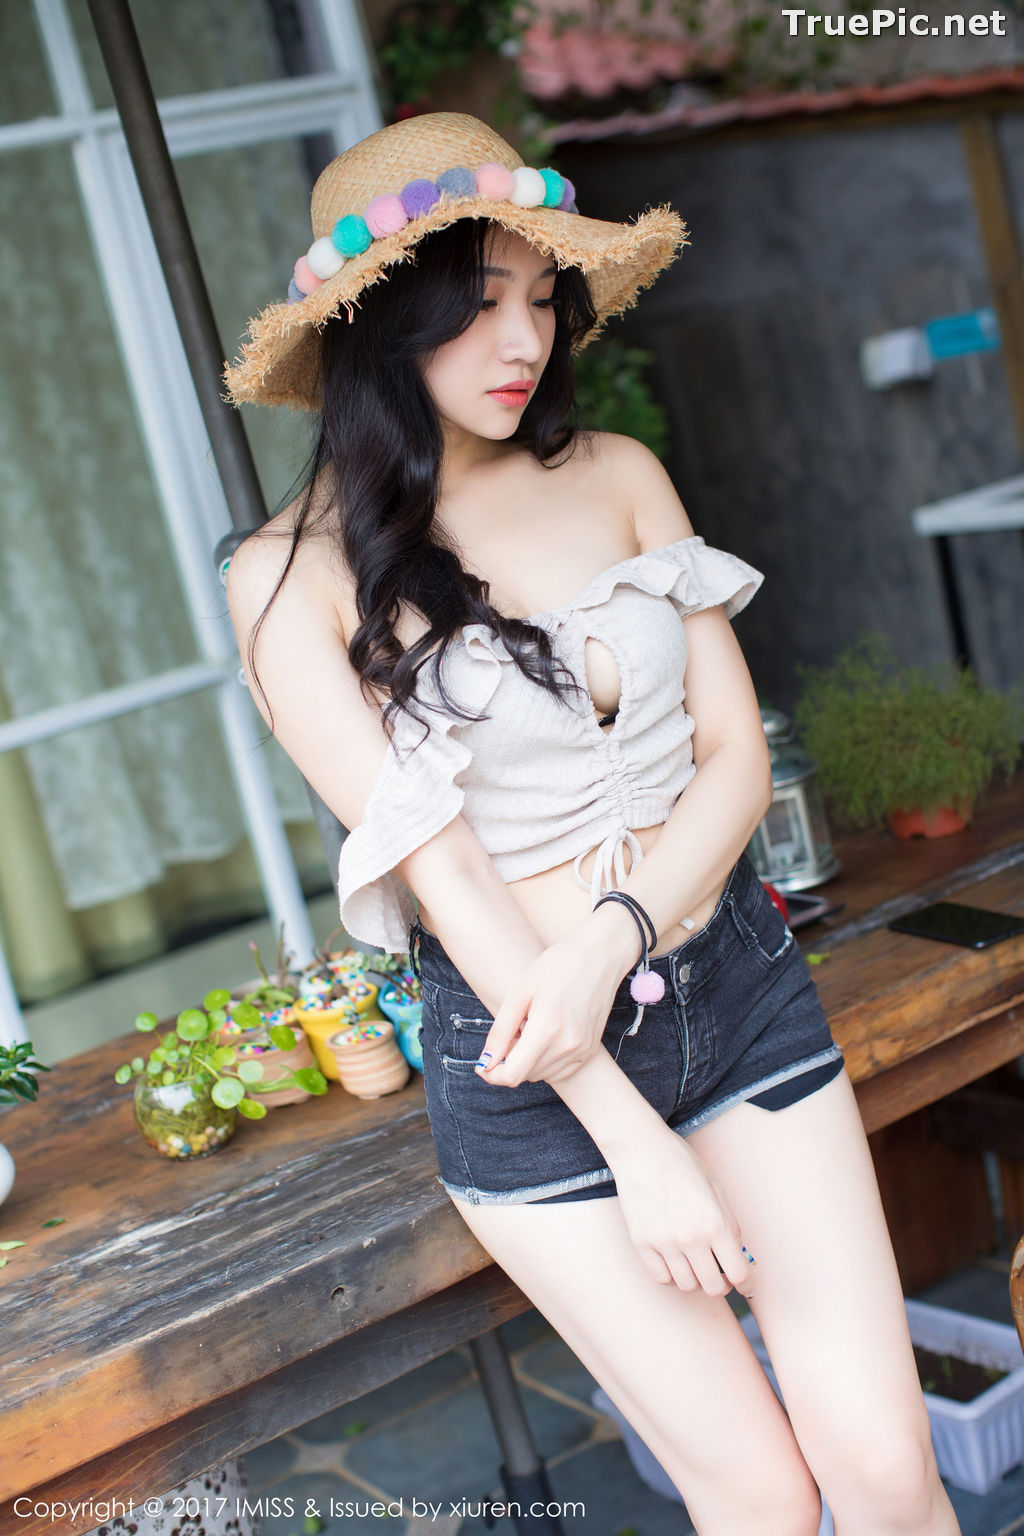 Image IMISS Vol.182 – Chinese Model Xiao Hu Li (小狐狸Sica) – Beachwear Fashion - TruePic.net - Picture-1